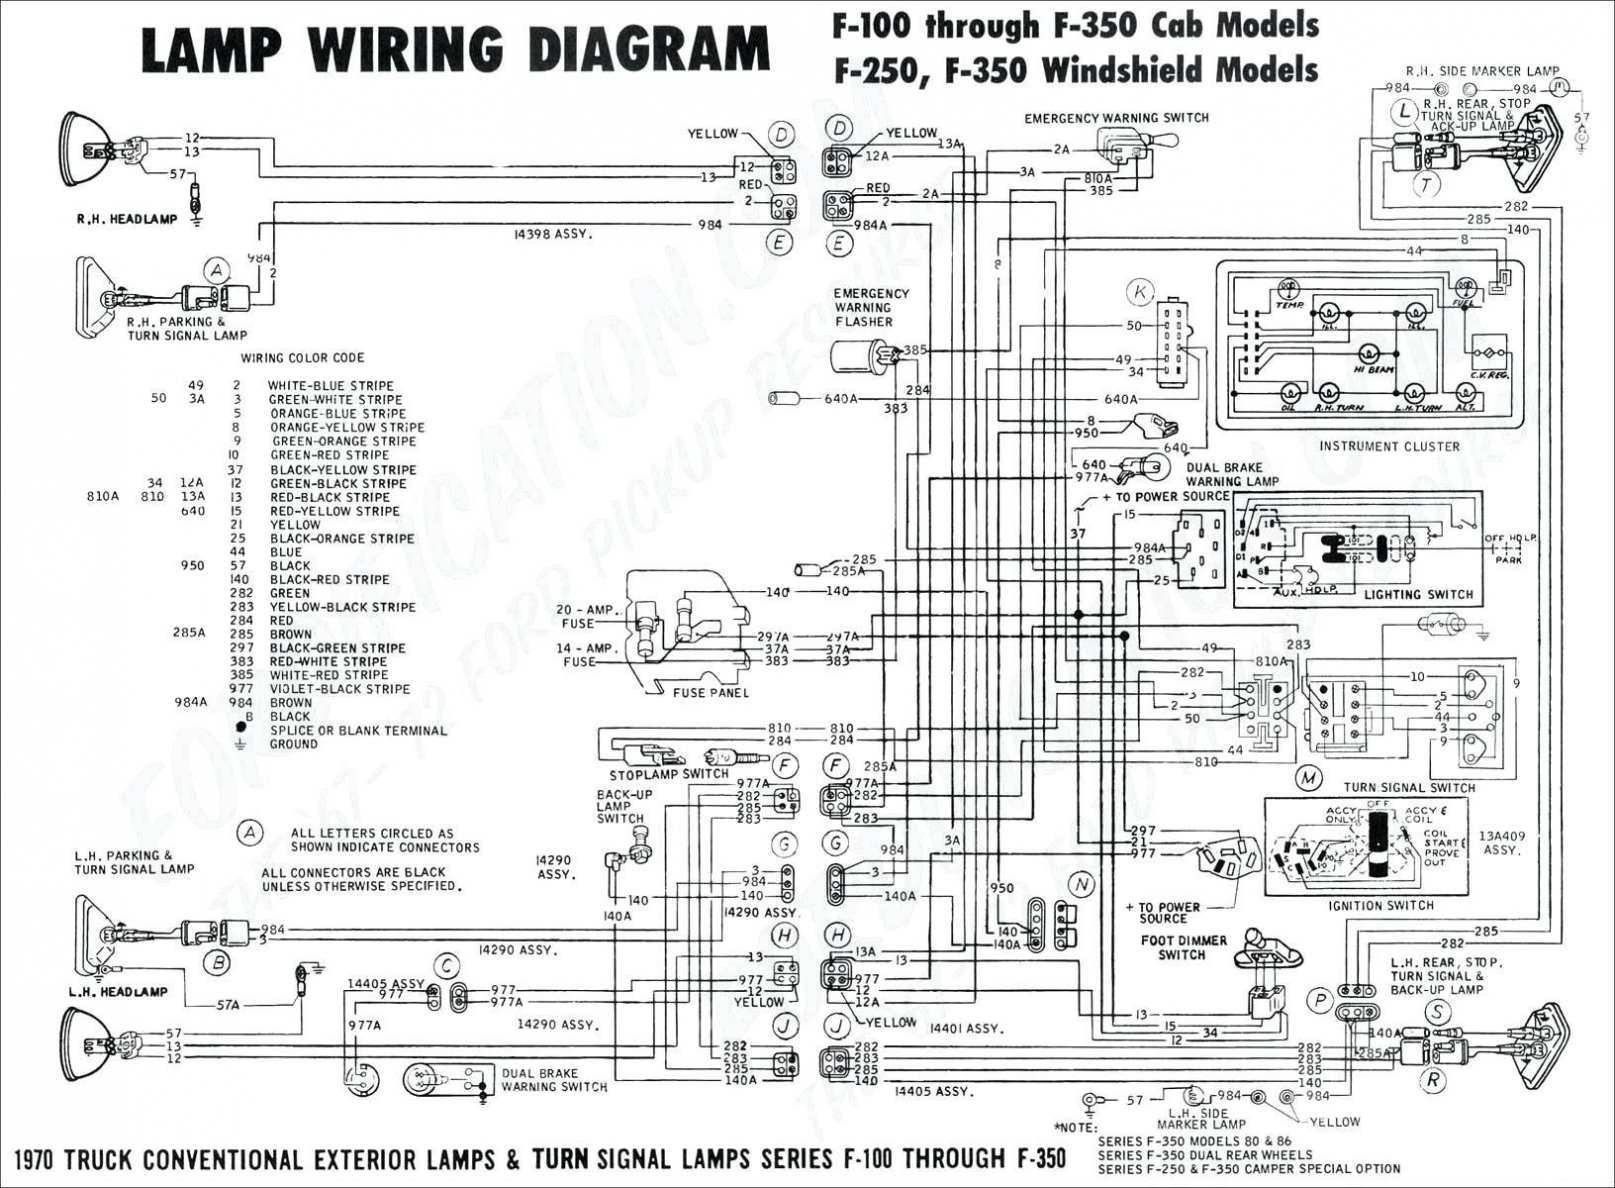 hight resolution of 2005 acura tl engine diagram also 1996 acura tl 3 2 engine diagram 2001 acura tl fuel system diagram wiring schematic